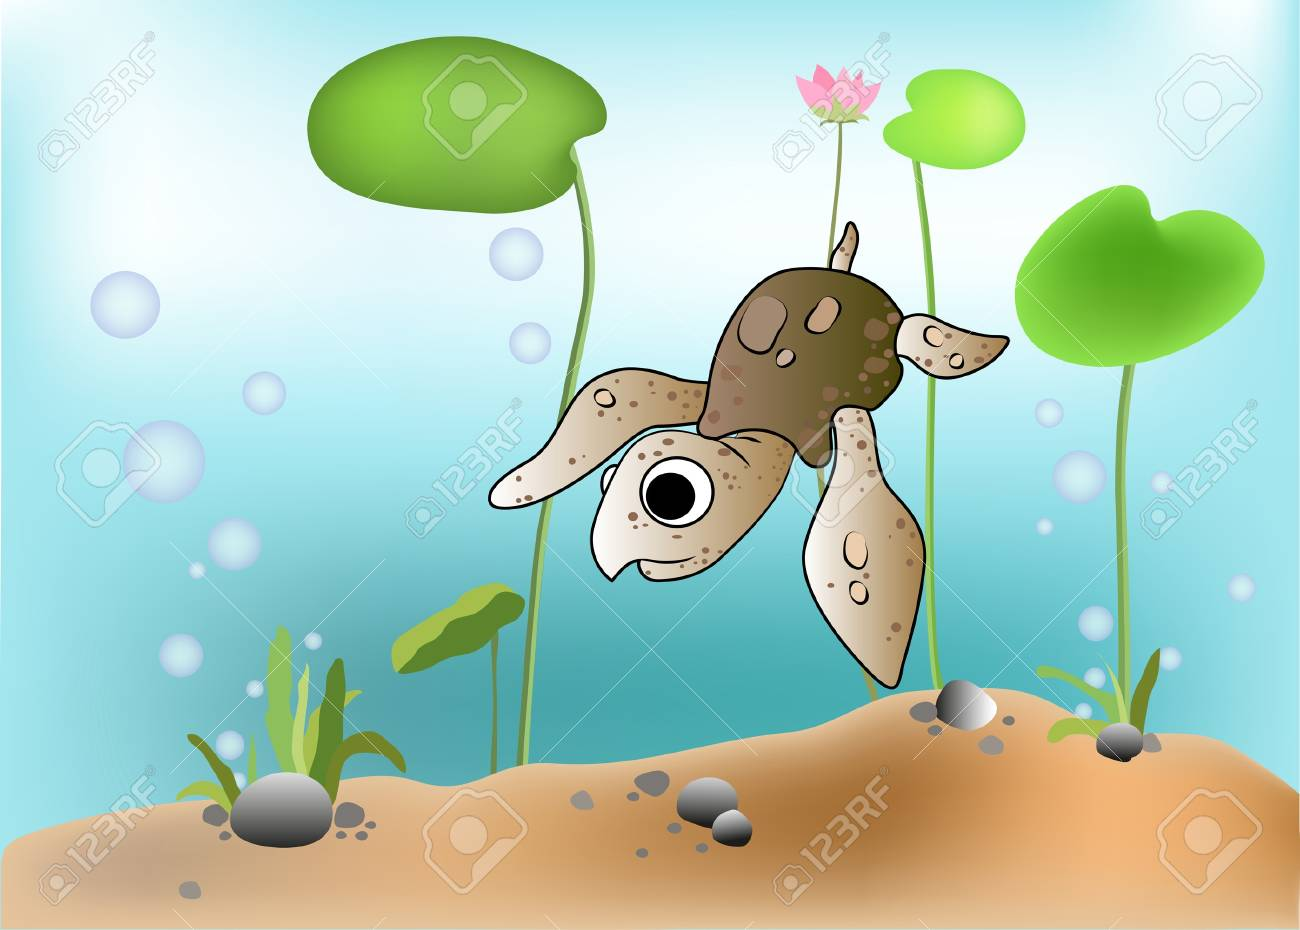 Illustration of a turtle scene underwater Stock Vector - 17437786